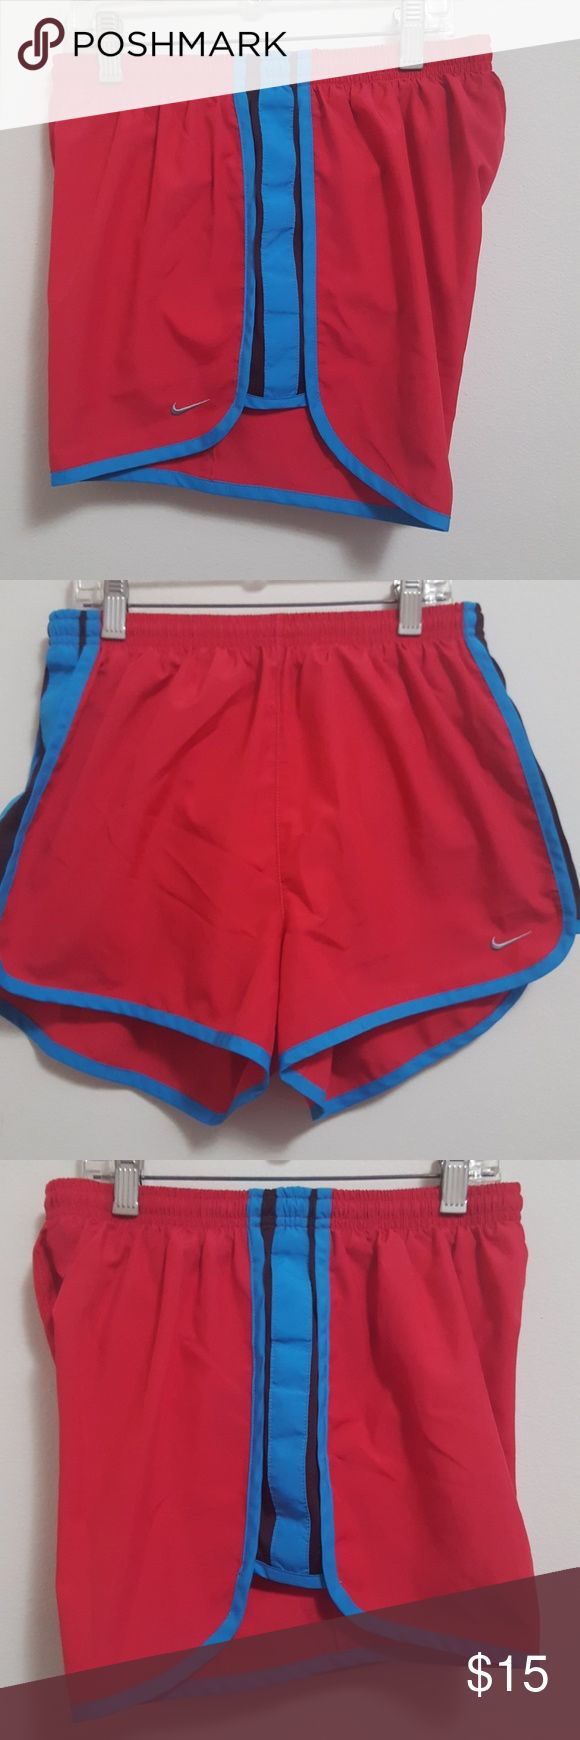 Nike women's drifit running shorts VERY GOOD CONDITION! Size small. Very minor to no flaws. Red shorts with sky blue trim with hint a of burgundy mesh on the sides. White inner lining with inner pocket in front.   Great for workout shorts or any active activity.   No trades. Bundle to save on shipping!  Offers are welcomed through offer button only Nike Shorts